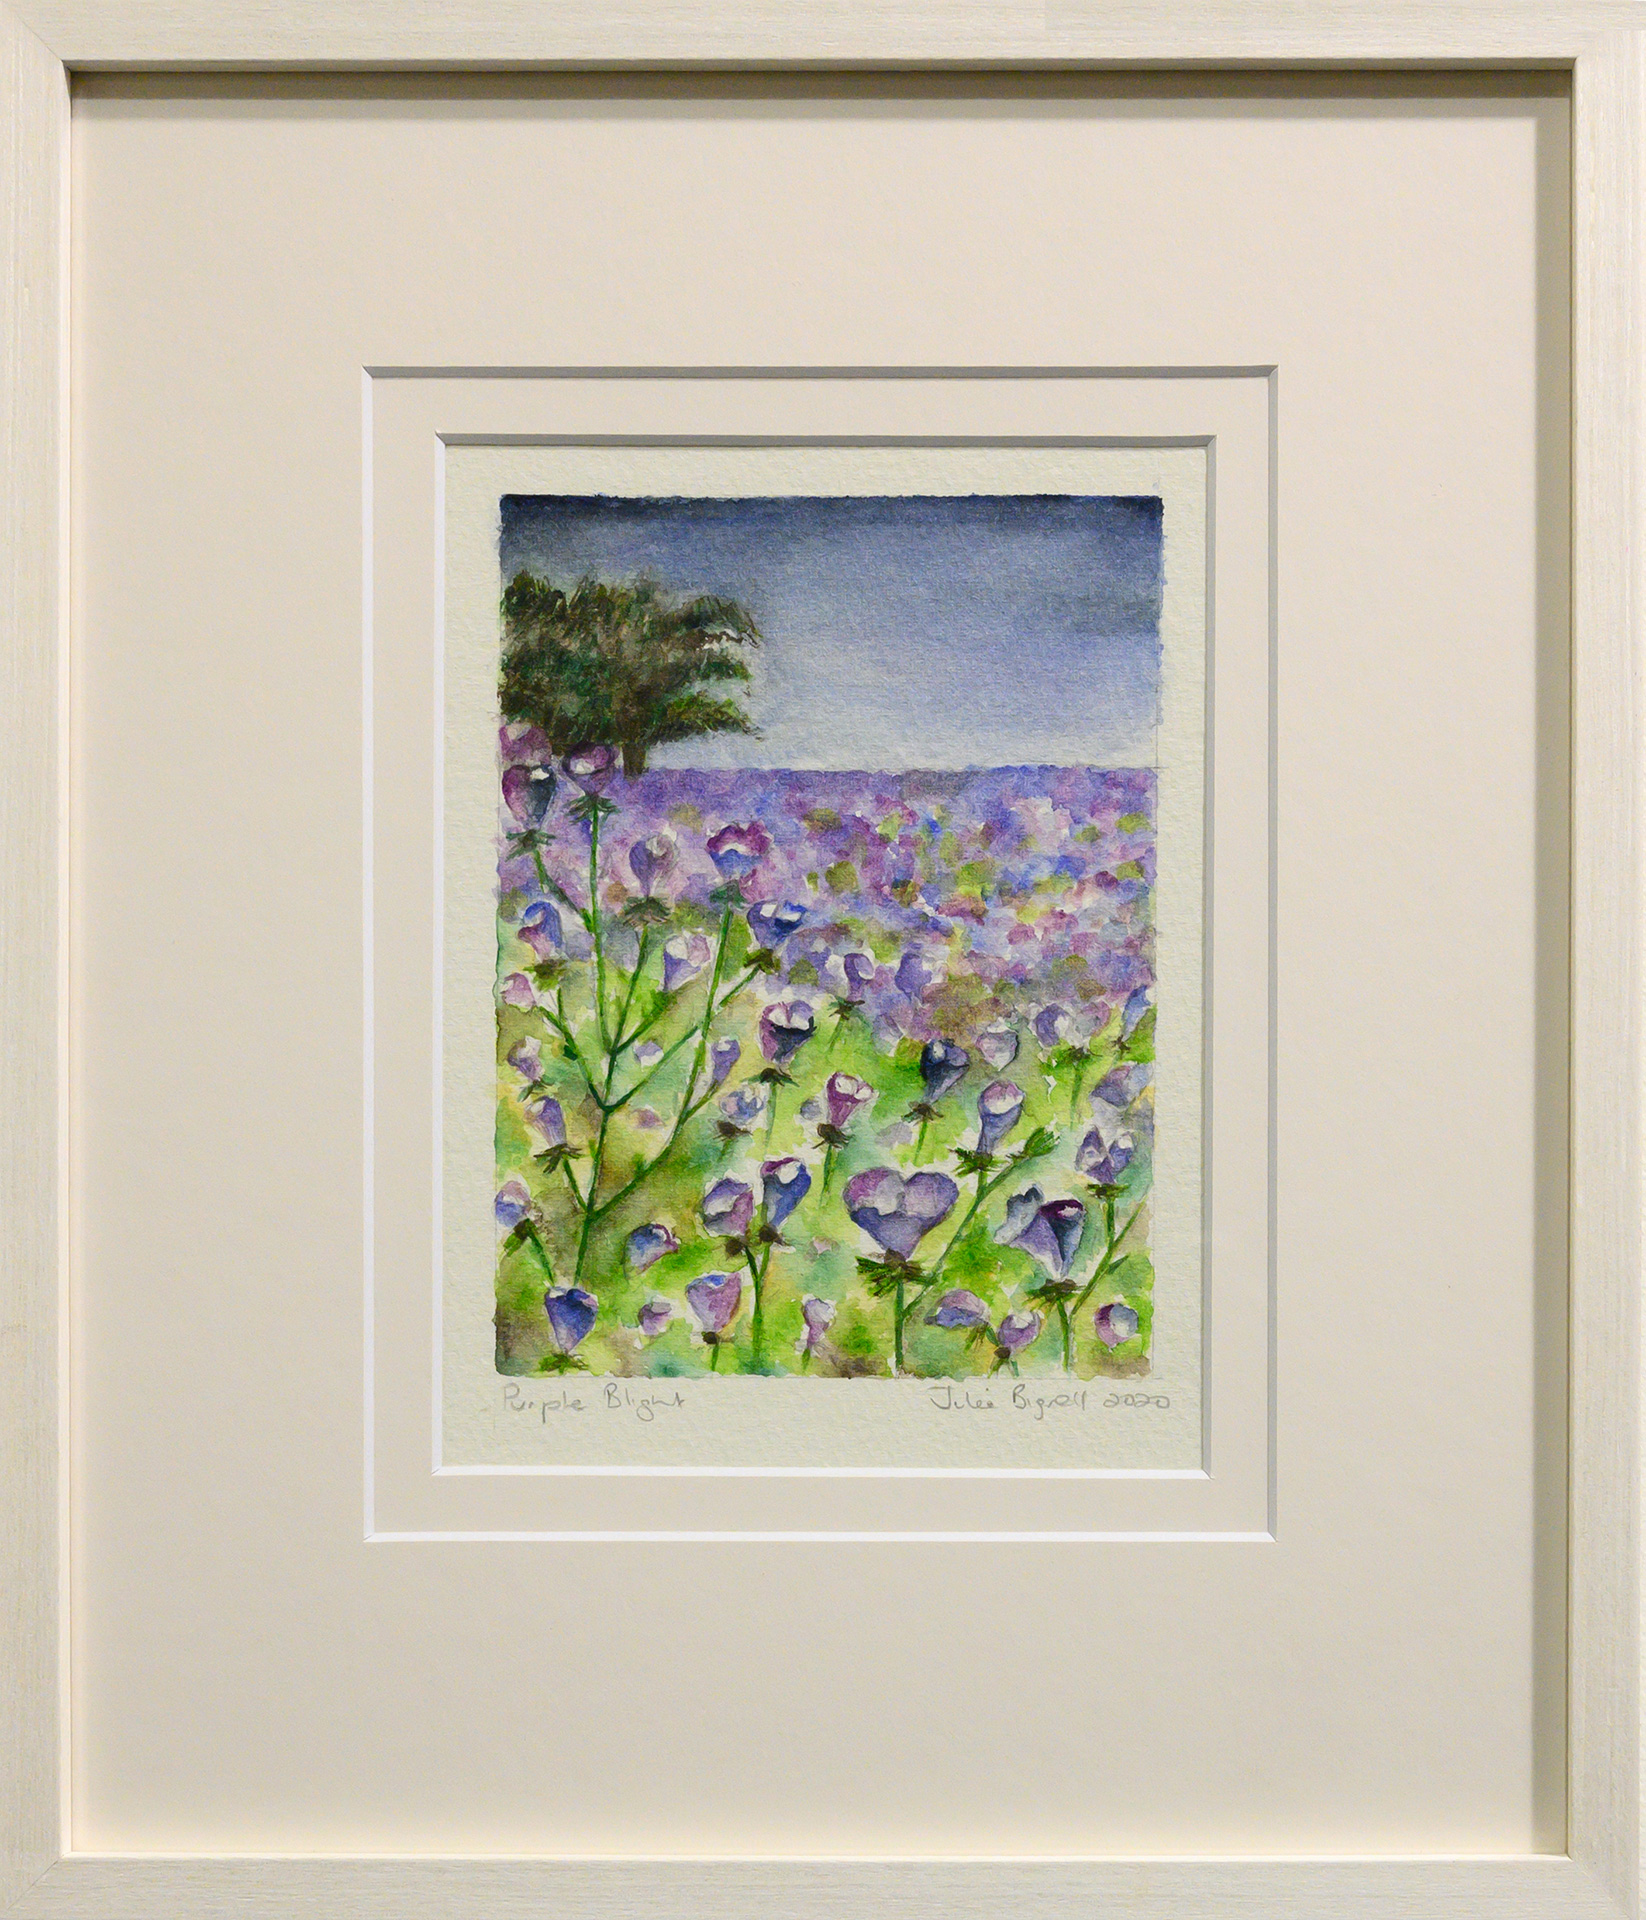 Framed artwork by Julie Bignell of purple flowers in the foreground with a field of green and purple in the background and a tree